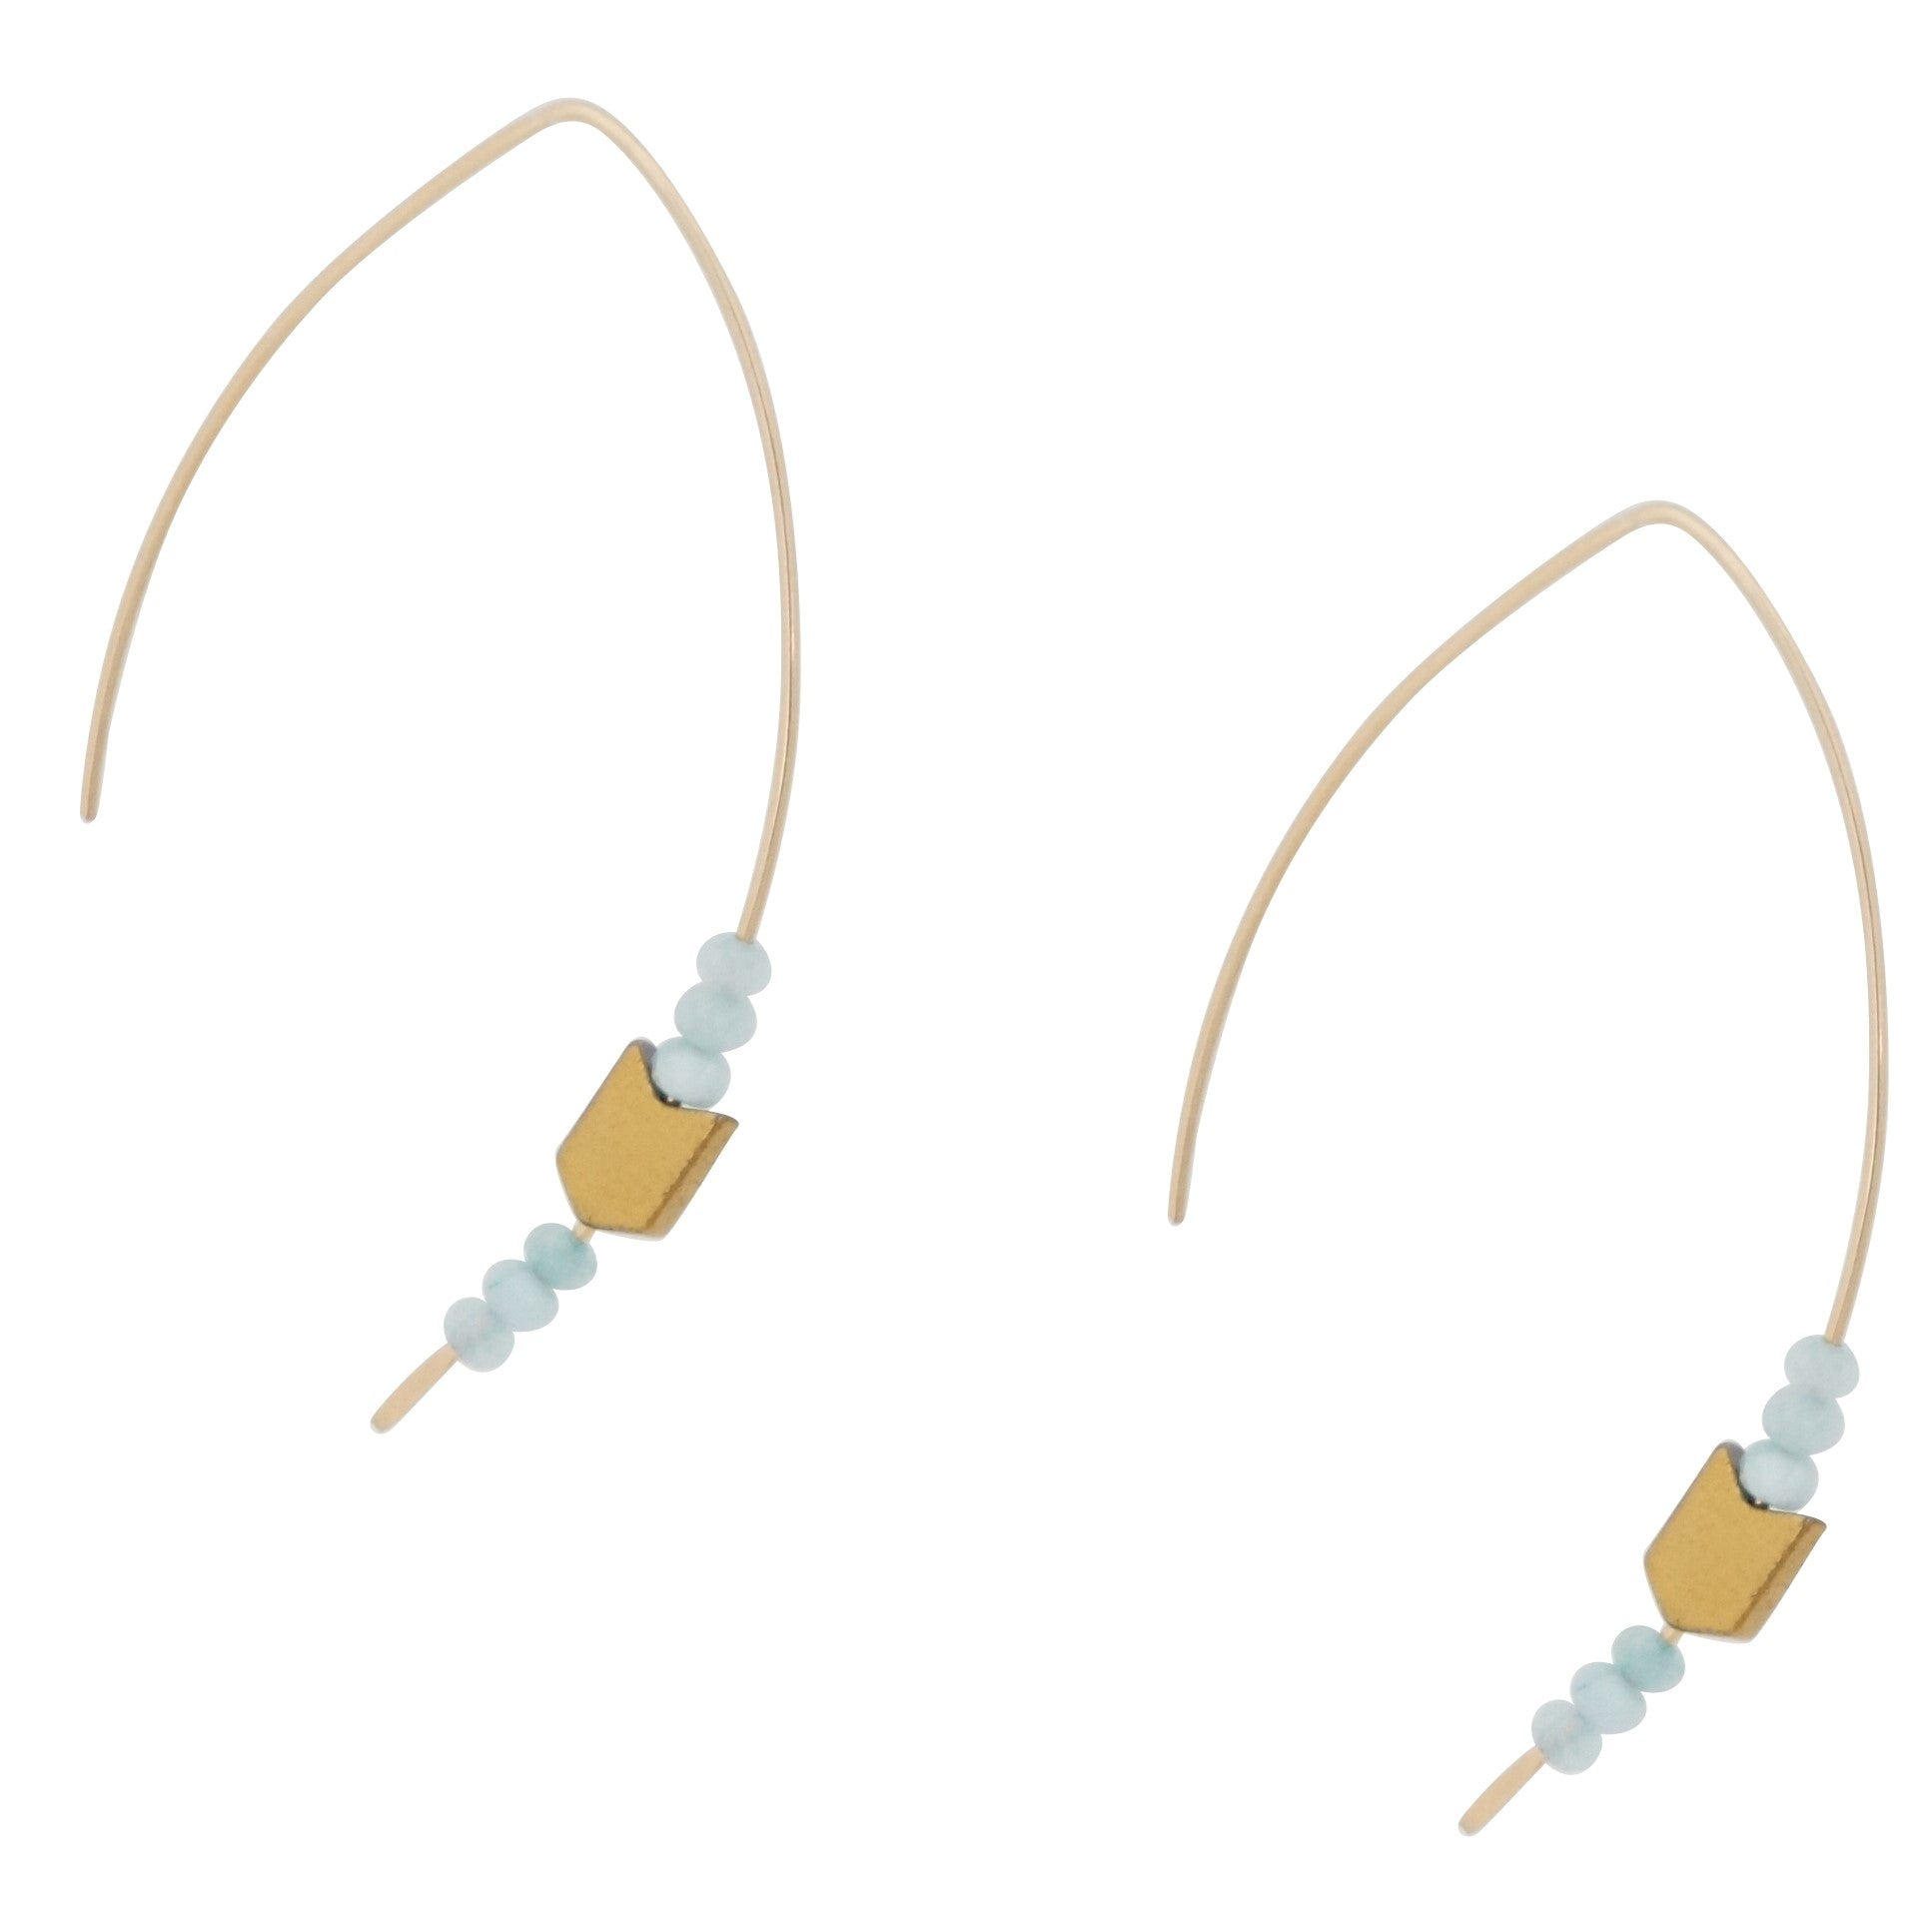 Find Your Way Earrings - Carolyn Hearn Designs